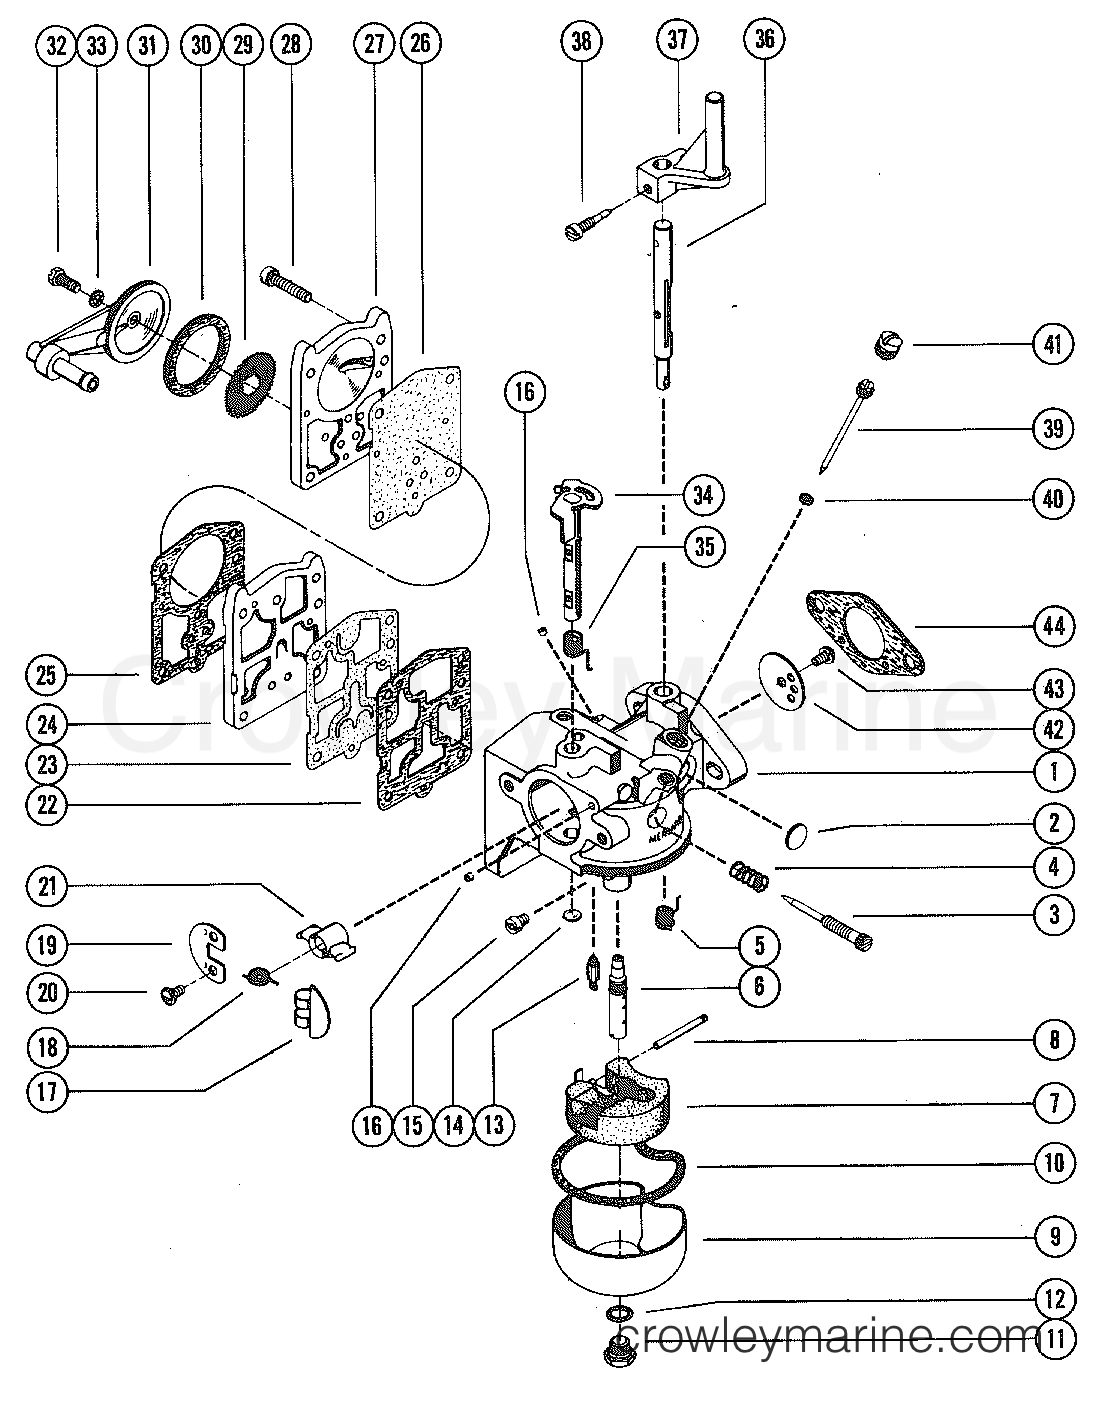 Mercury Carb Diagram Wiring Libraries 25 Hp Outboard Third Levelcarburetor Assembly Complete 1975 9 8 1110205